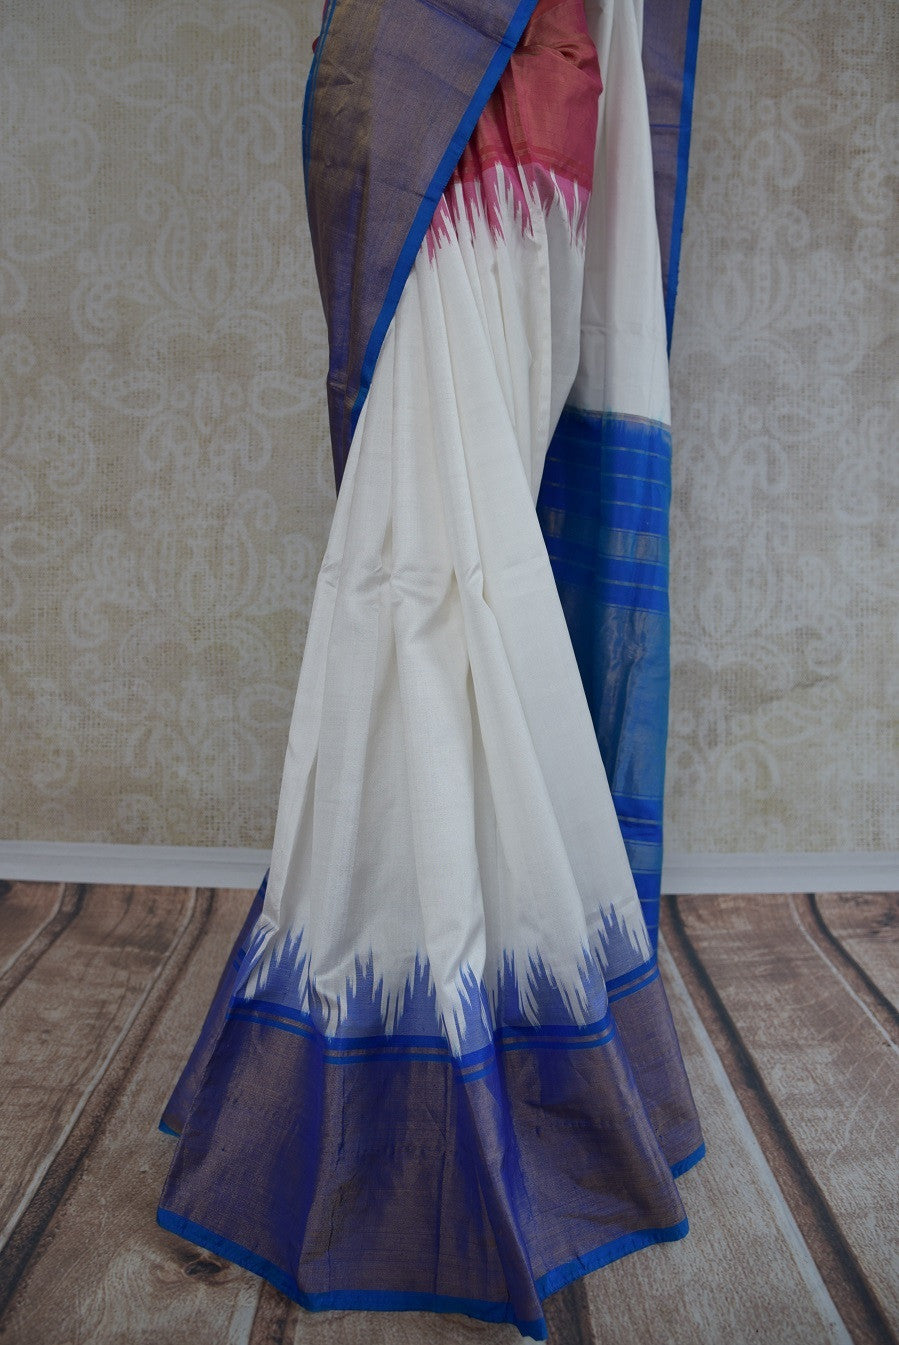 90B767 A silk ikkat saree that makes for a lovely & simple Indian outfit. The blue white & red sari can be bought online at Pure Elegance - our Indian wear store online in USA. Versatile and beautiful, this simple saree is an evergreen style hit!